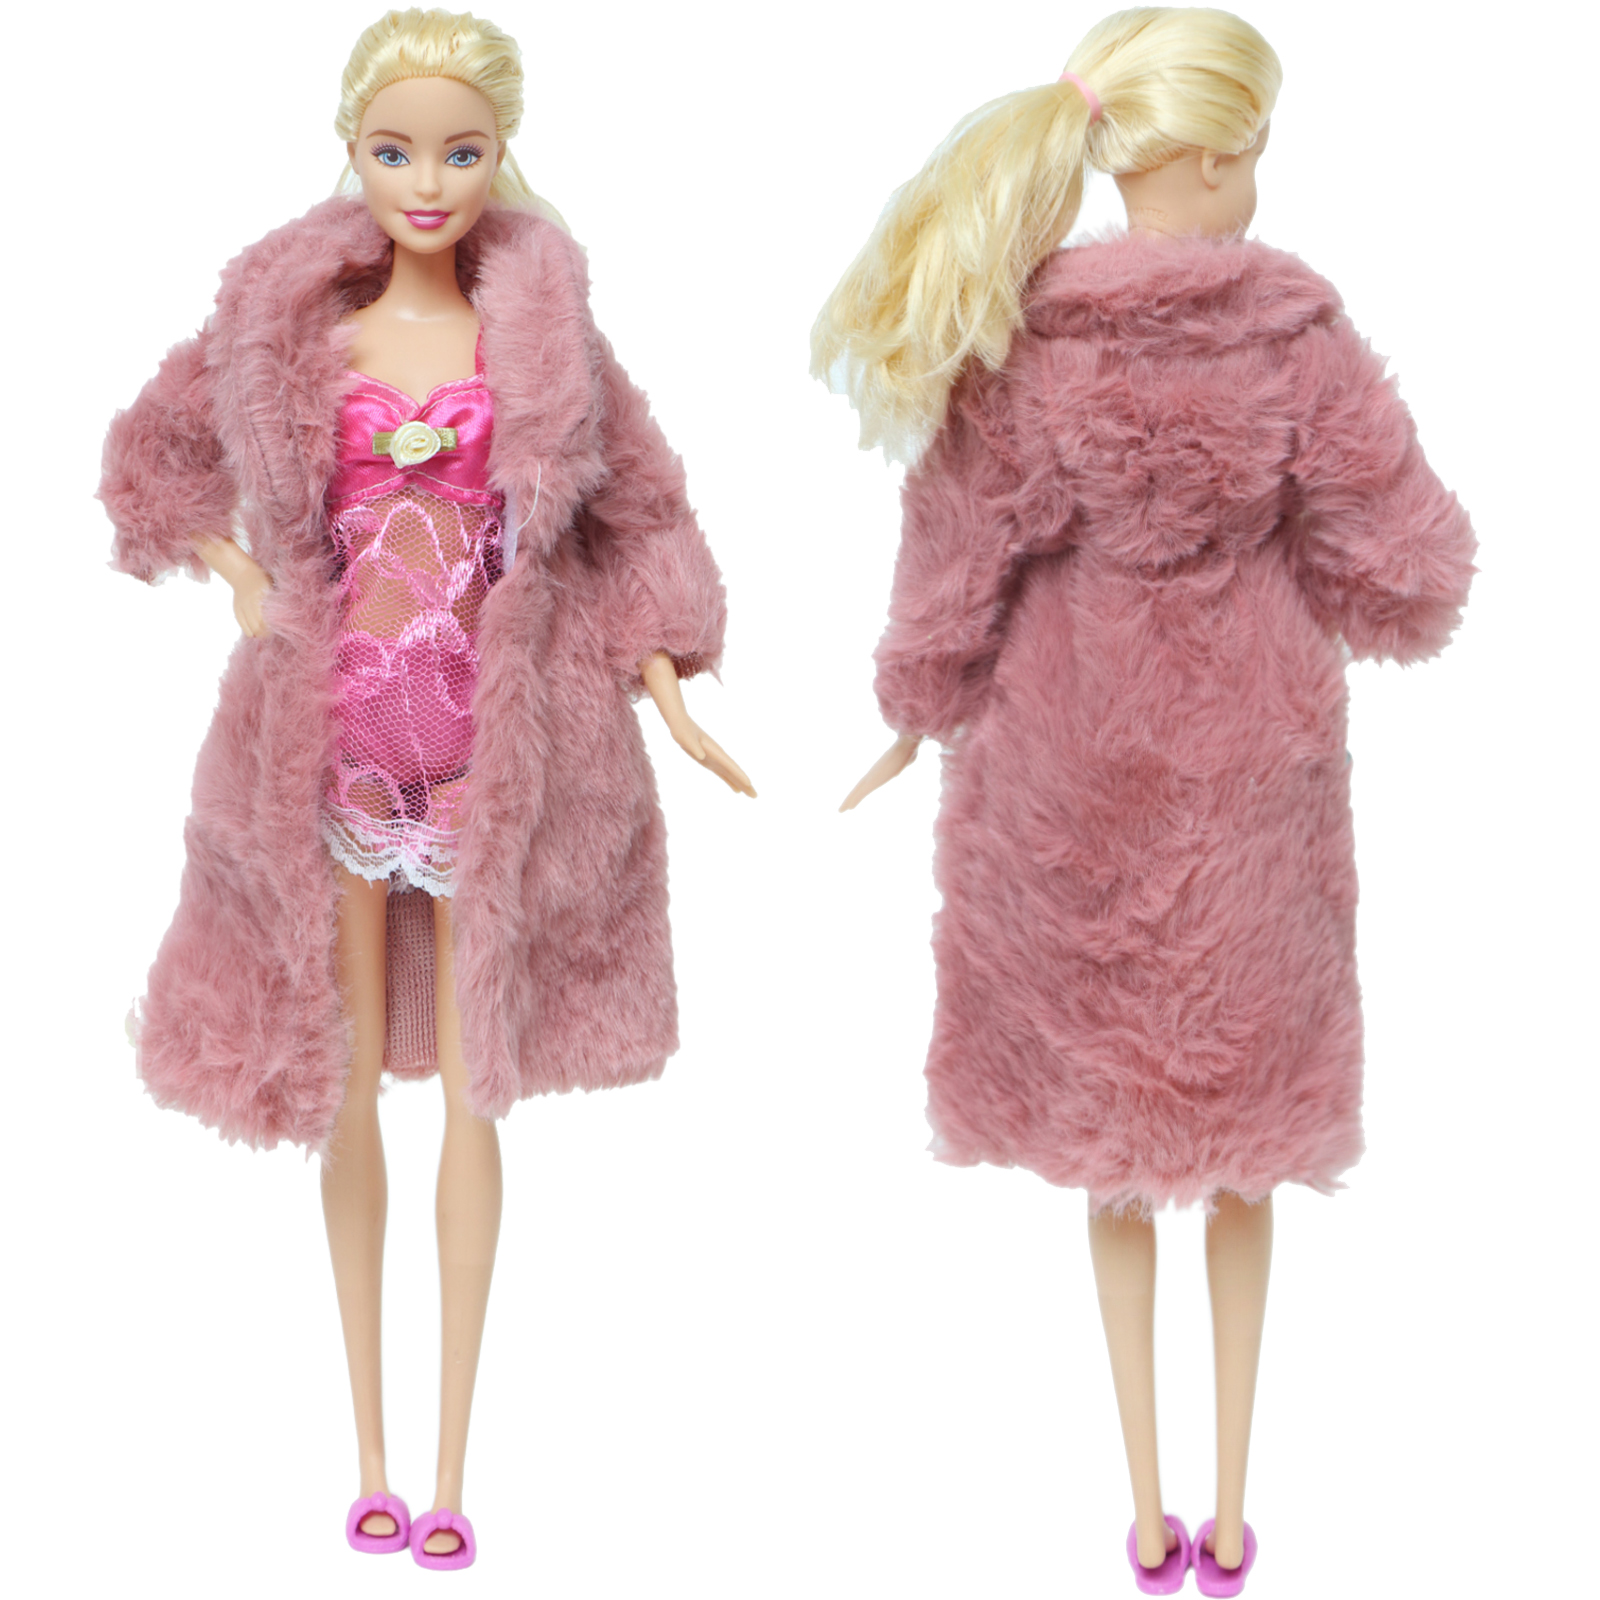 Handmade Doll Outfit Pretty Doll Clothes Set Coat +  Lovely Flat Slippers + Lace Pajamas Outfit for 12